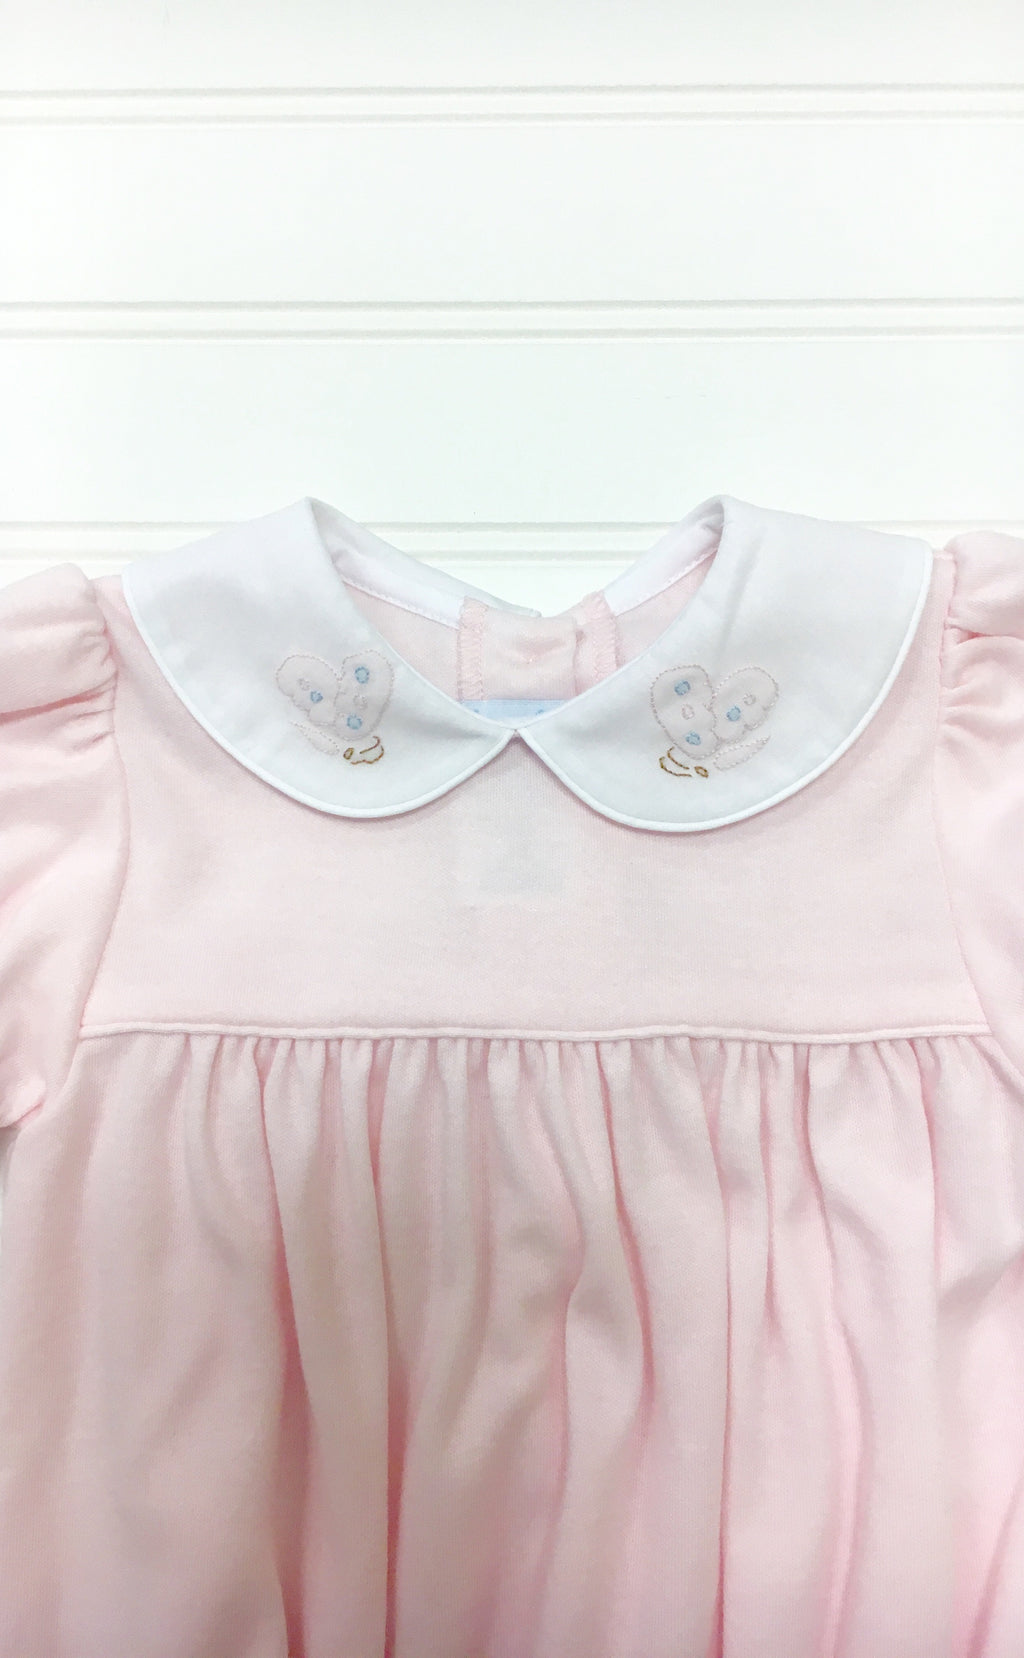 Auraluz Pink Knit Bubble with Butterfly - Born Childrens Boutique